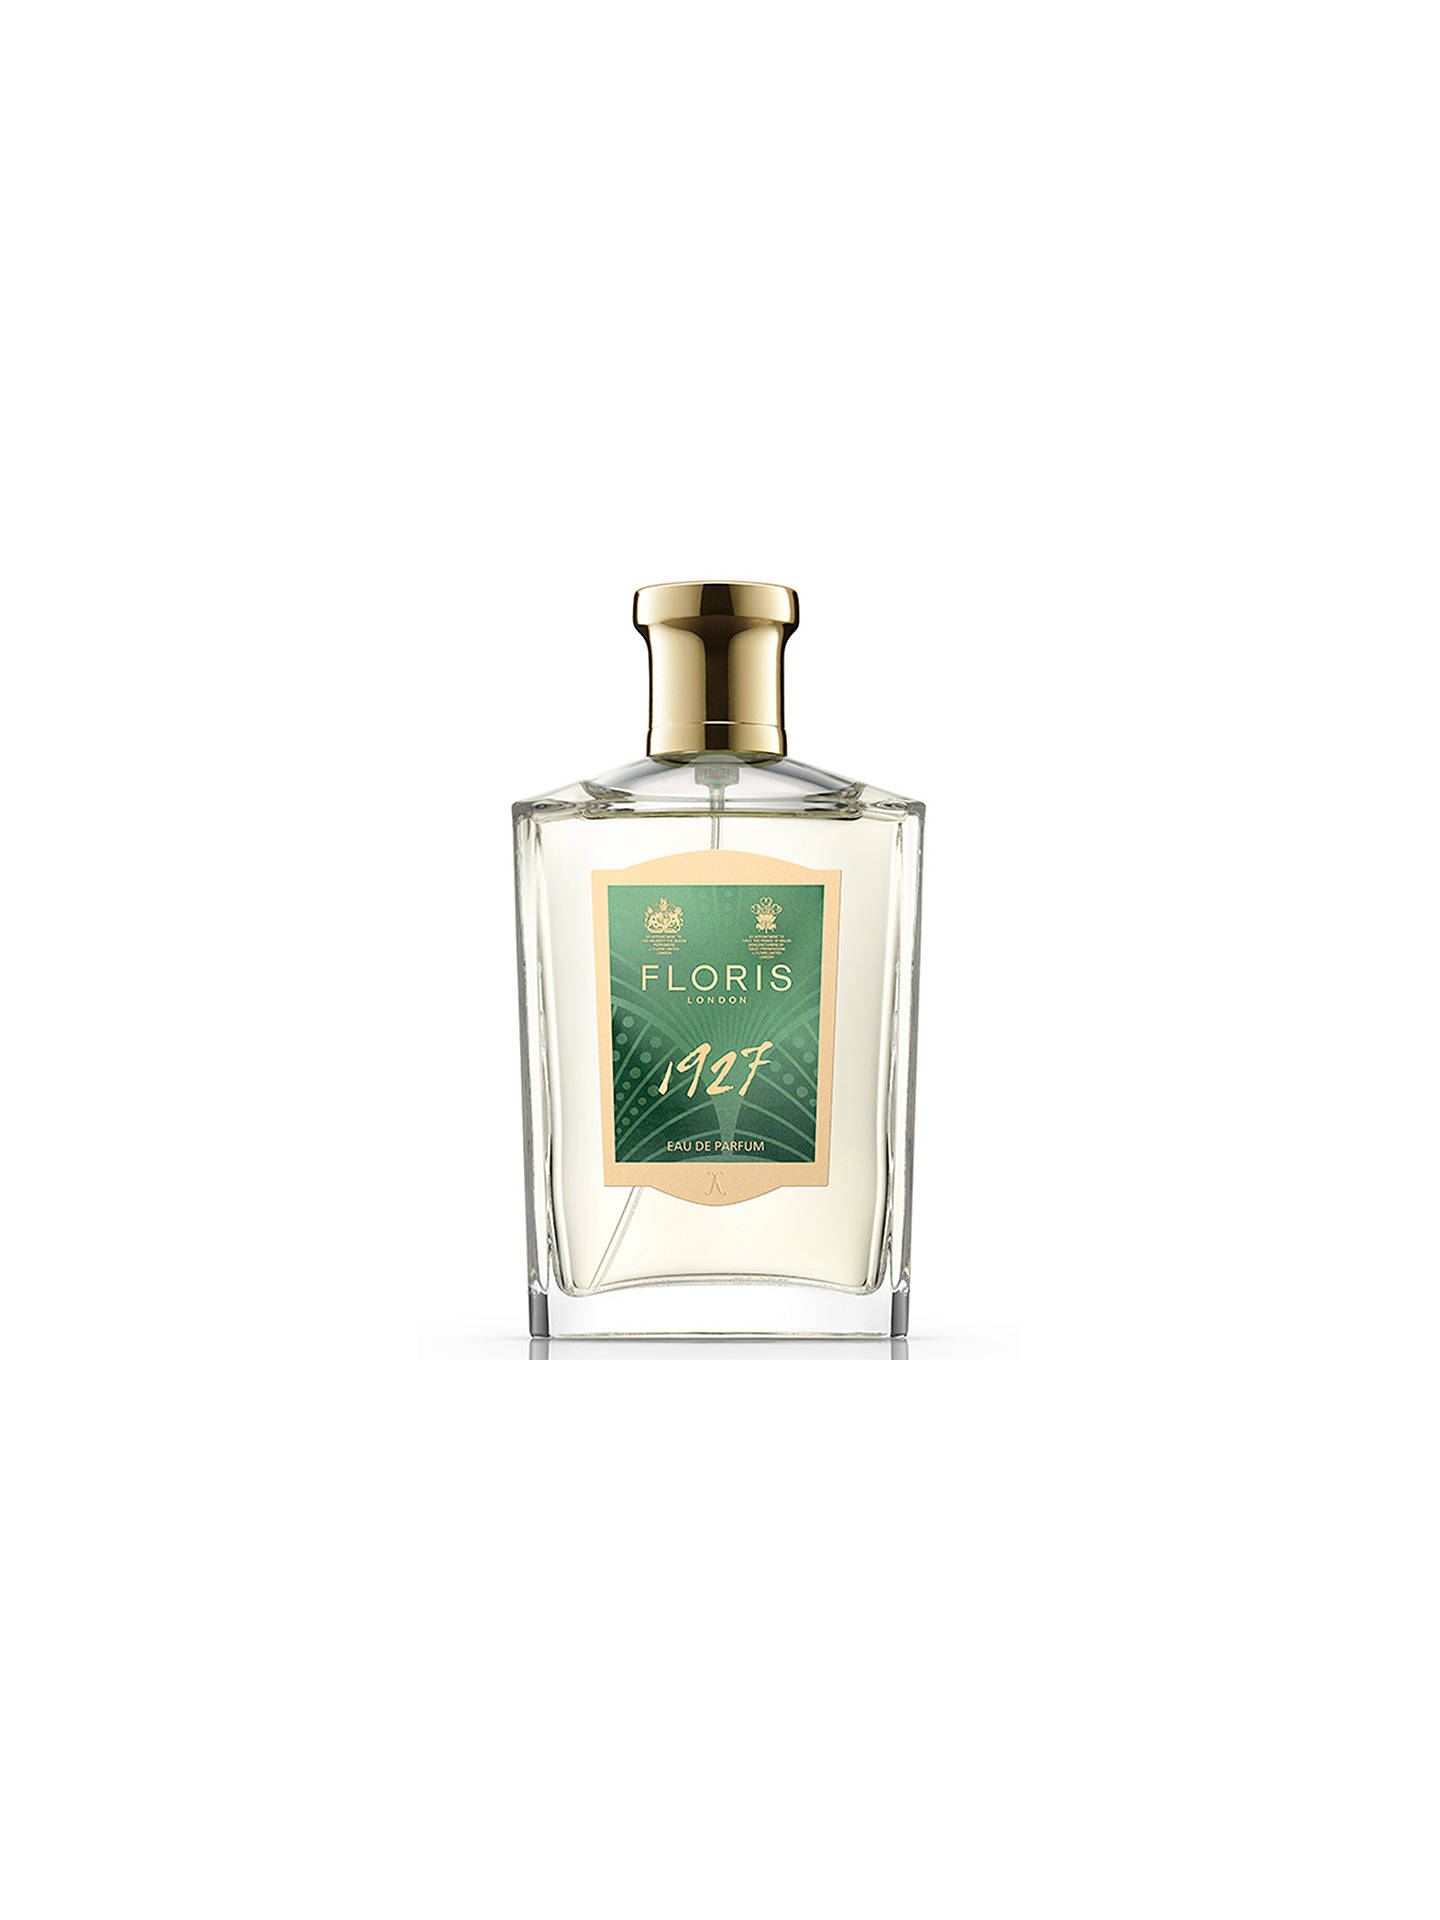 Buy Floris 1927 Eau de Parfum, 100ml Online at johnlewis.com